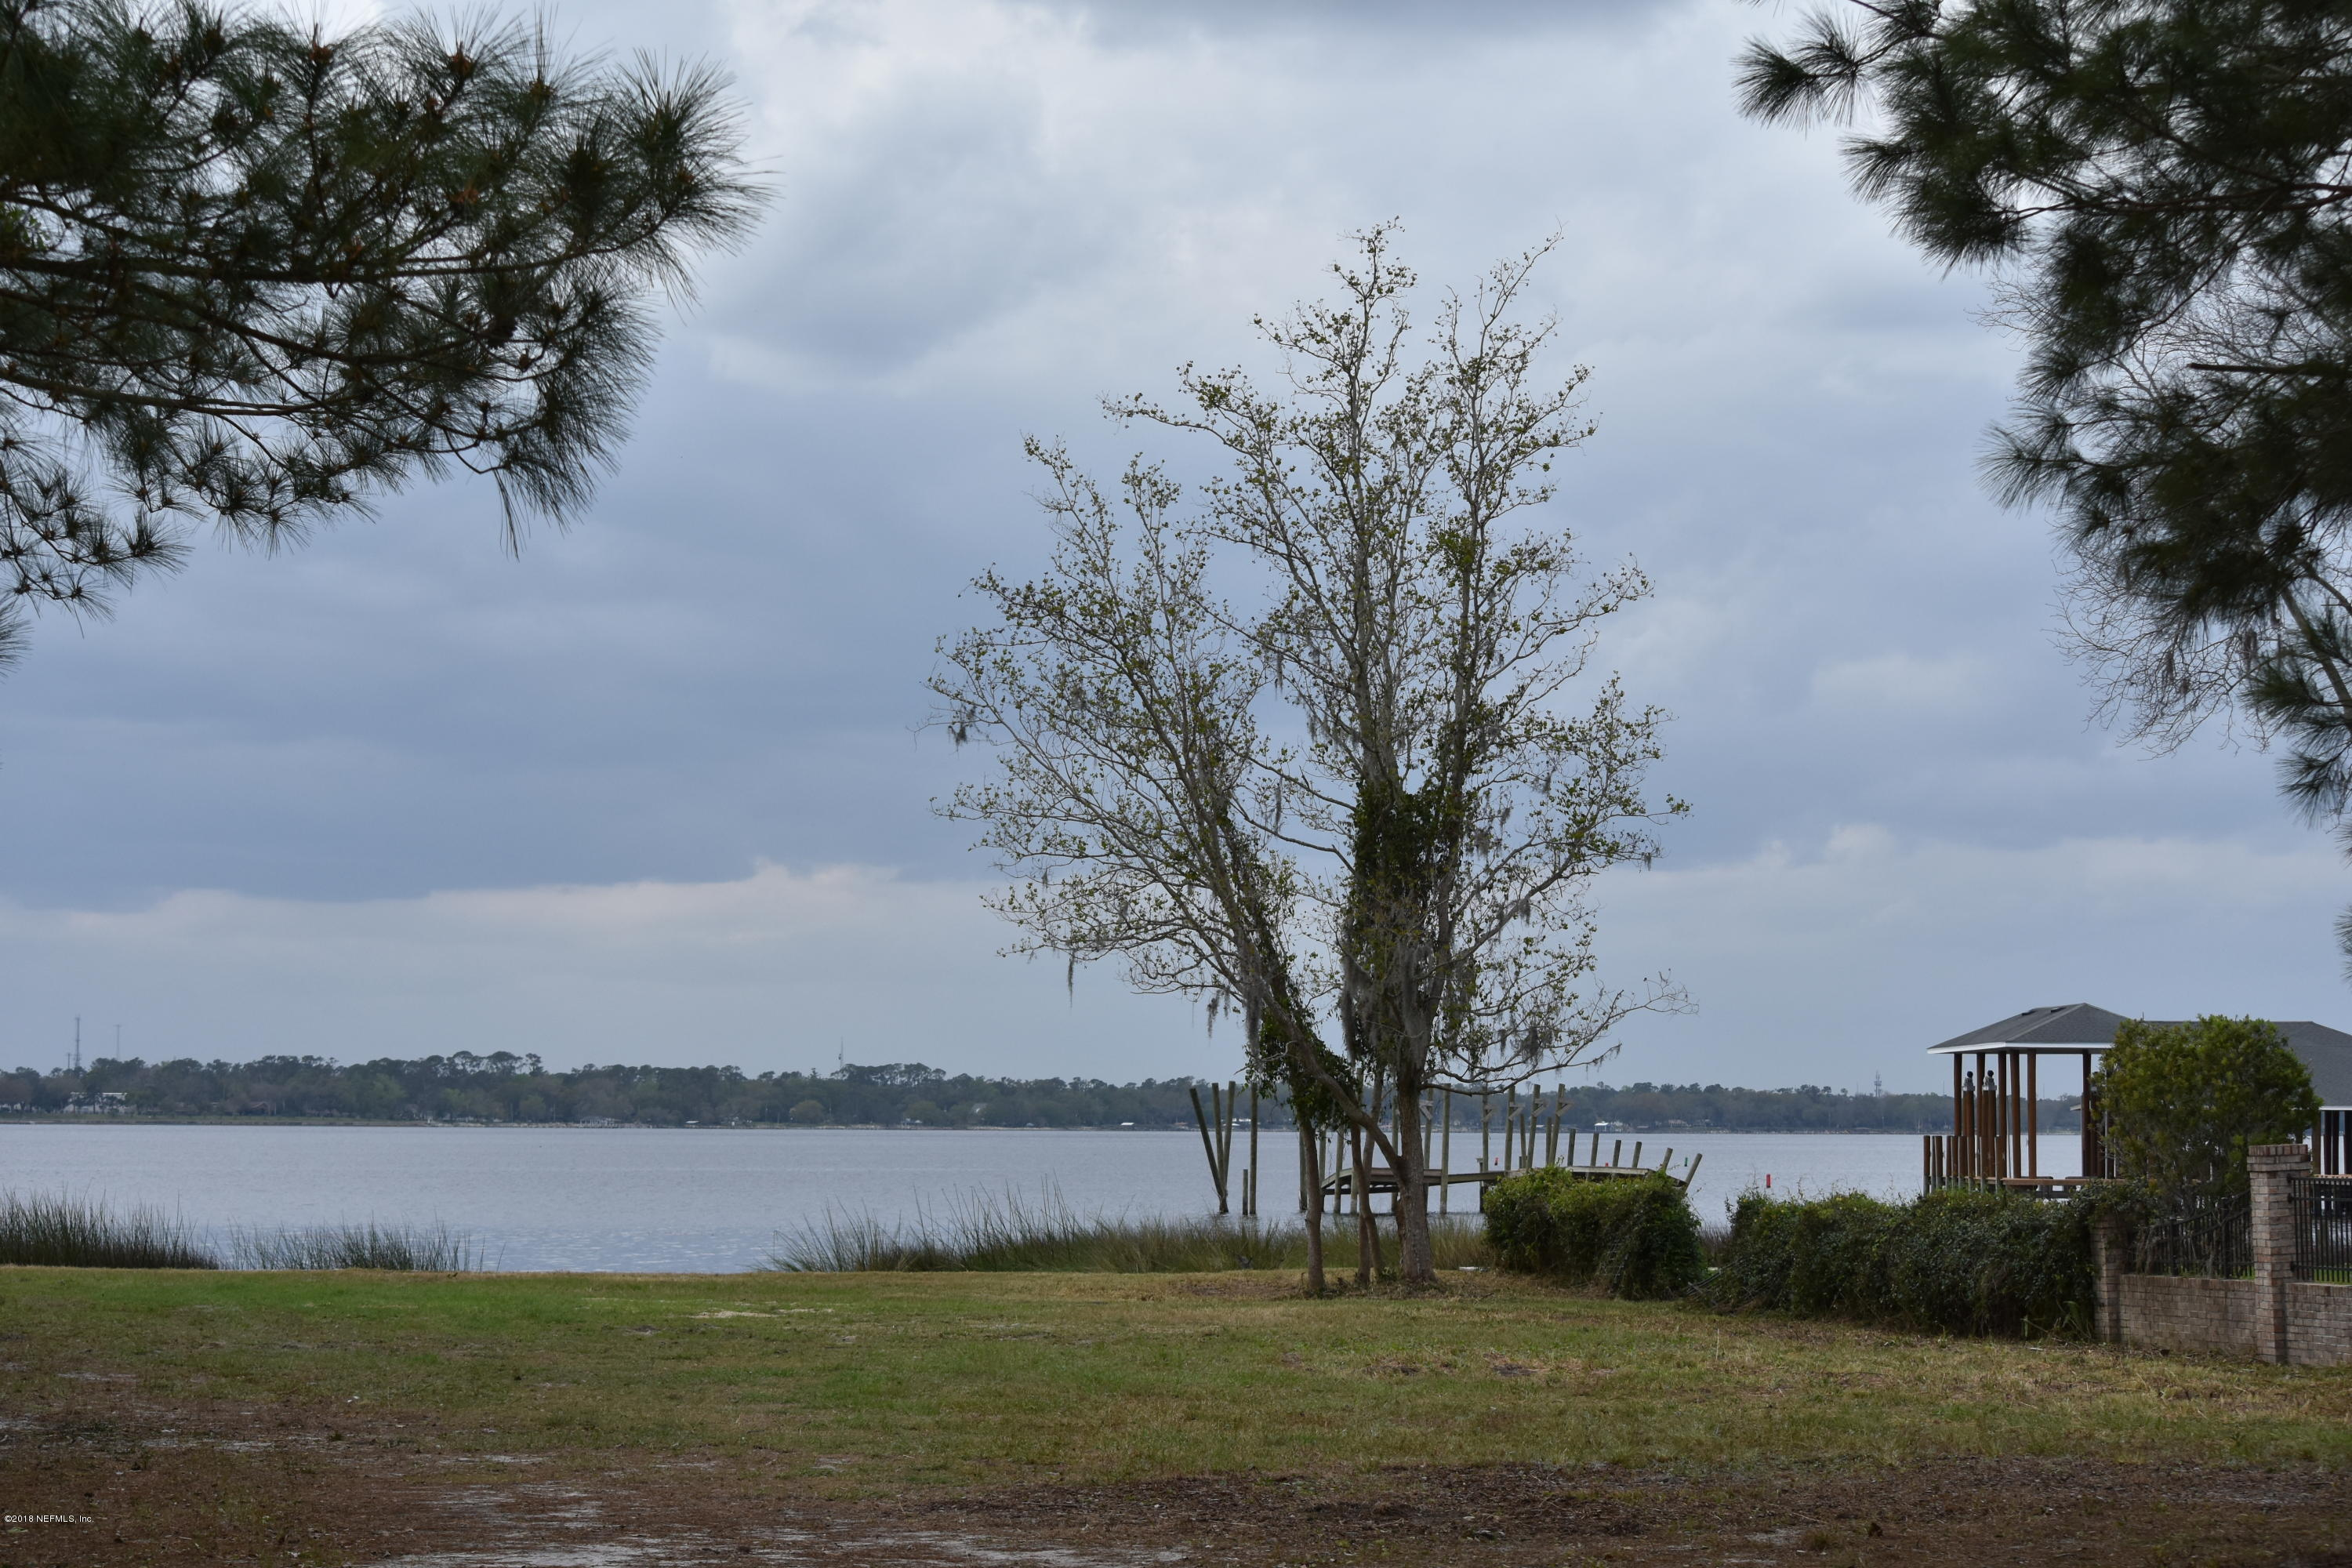 0 RIVERPLACE, JACKSONVILLE, FLORIDA 32223, ,Vacant land,For sale,RIVERPLACE,898512